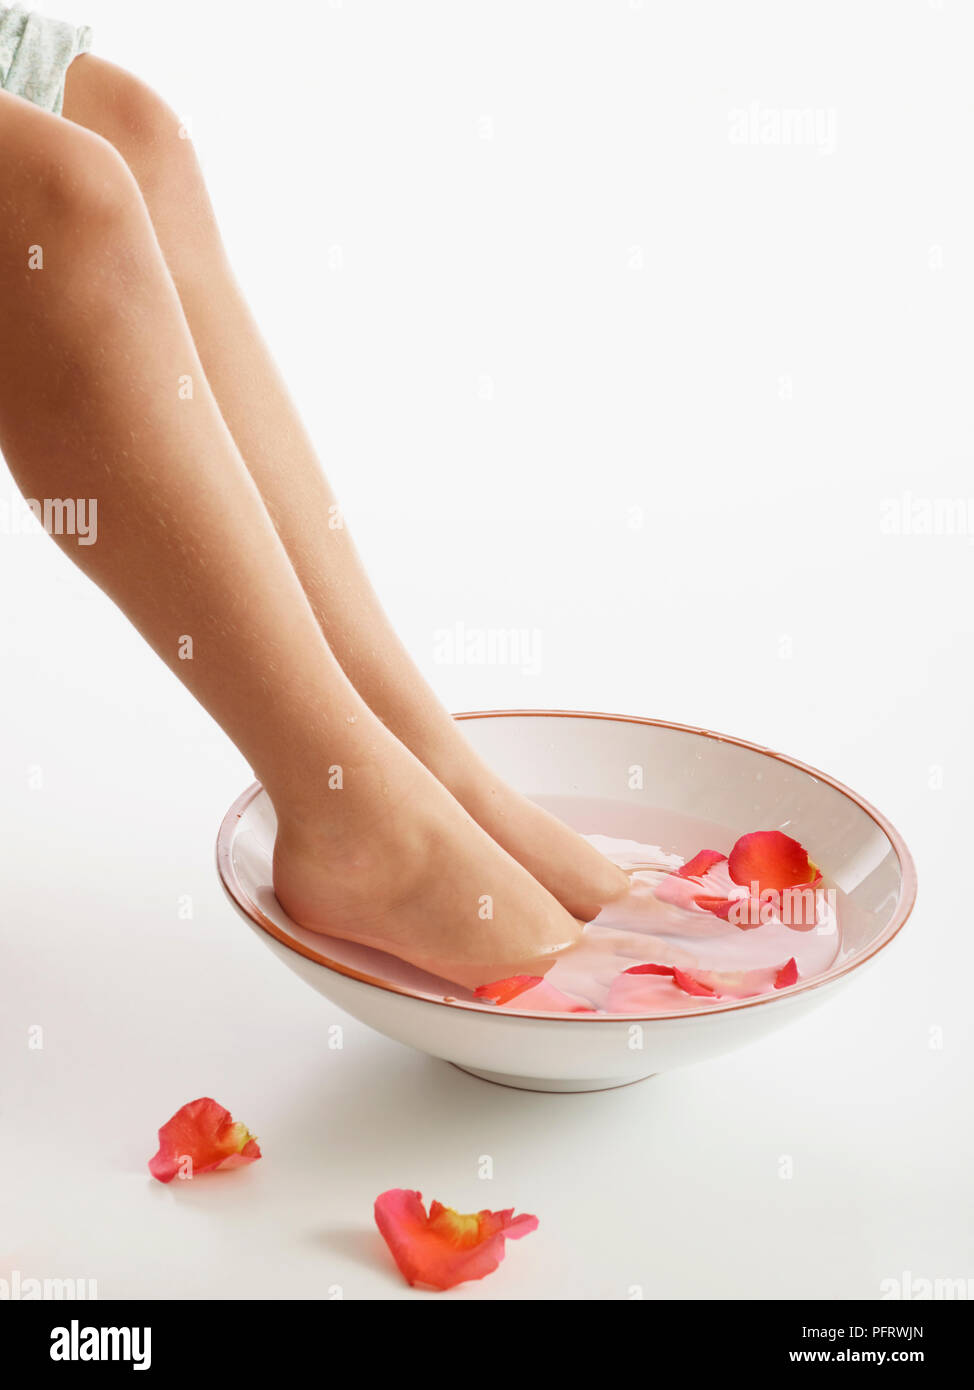 Feet in foot soak - Stock Image